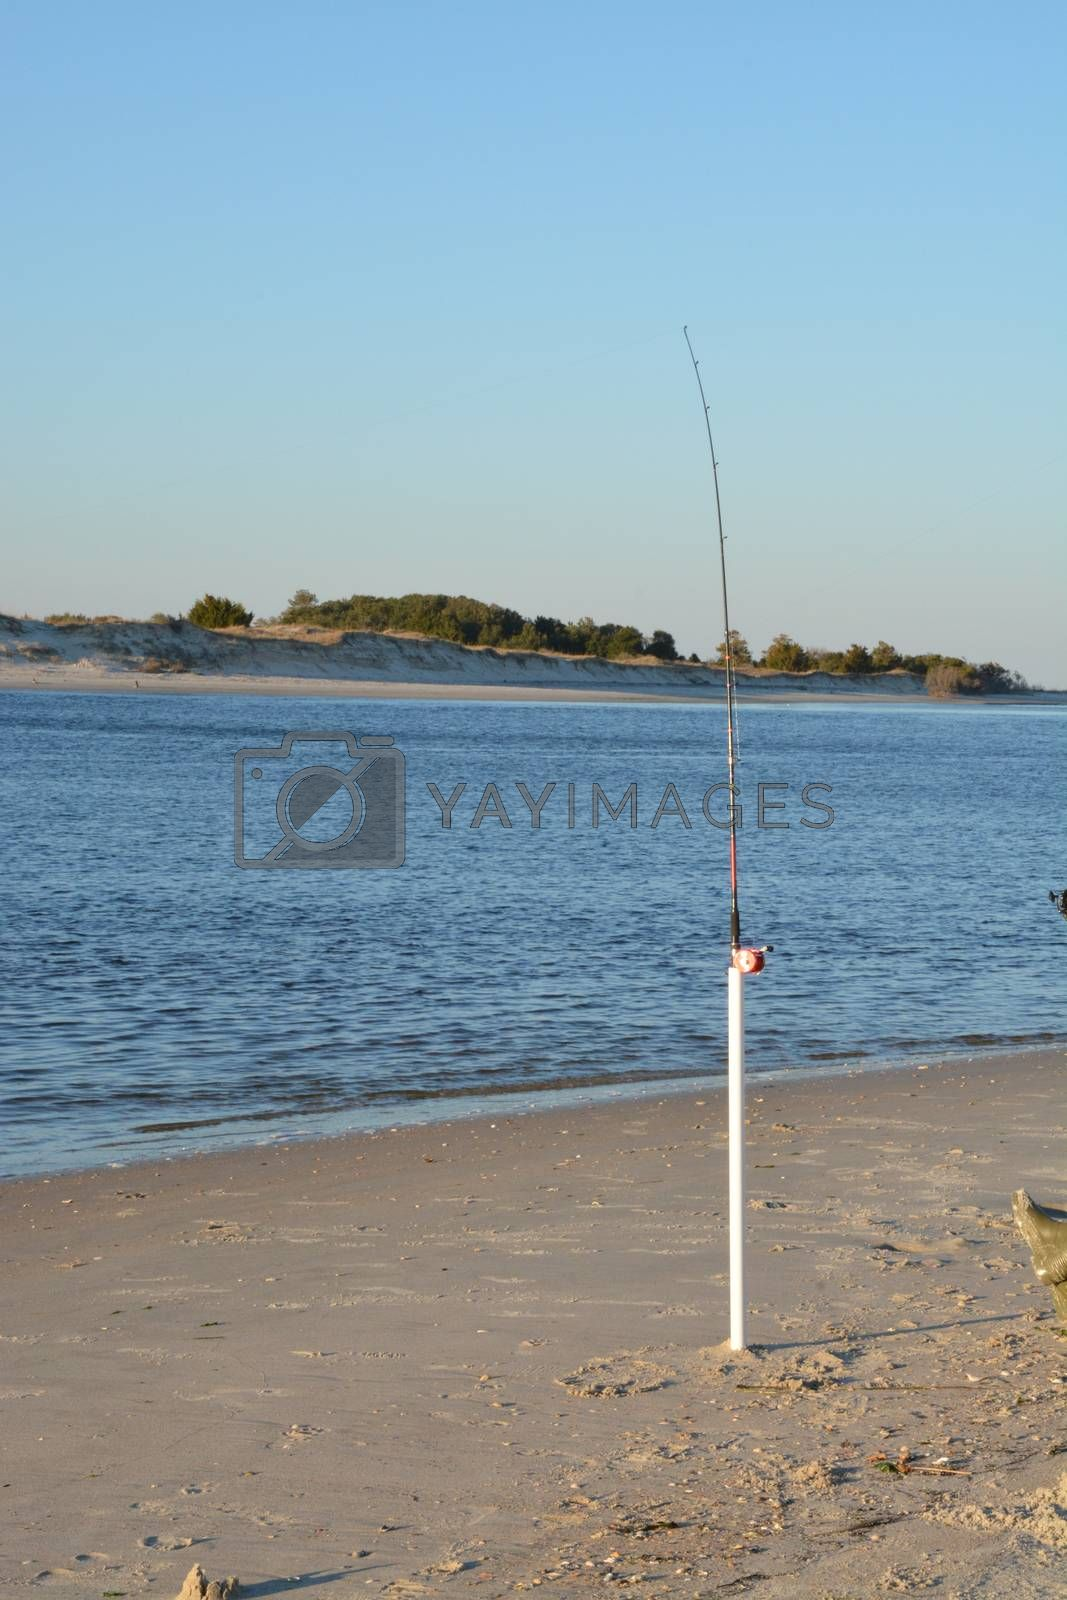 A view of the shore around the north end of Carolina Beach with a fishing pole suck in the ground.